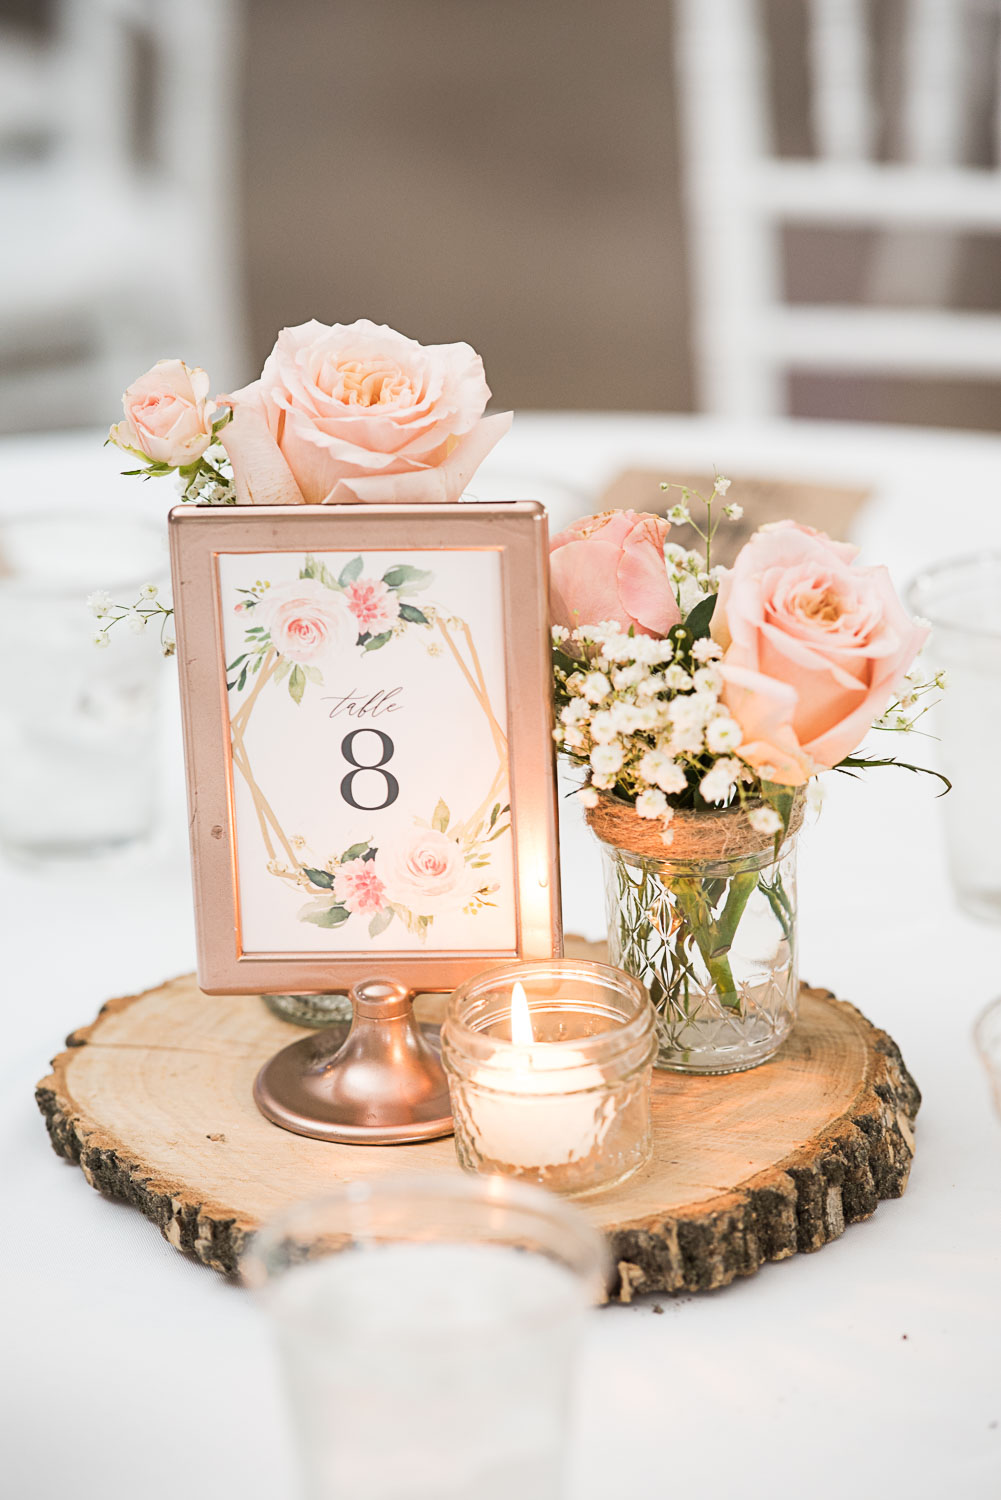 90 Summer Wedding Table Decorations.jpg